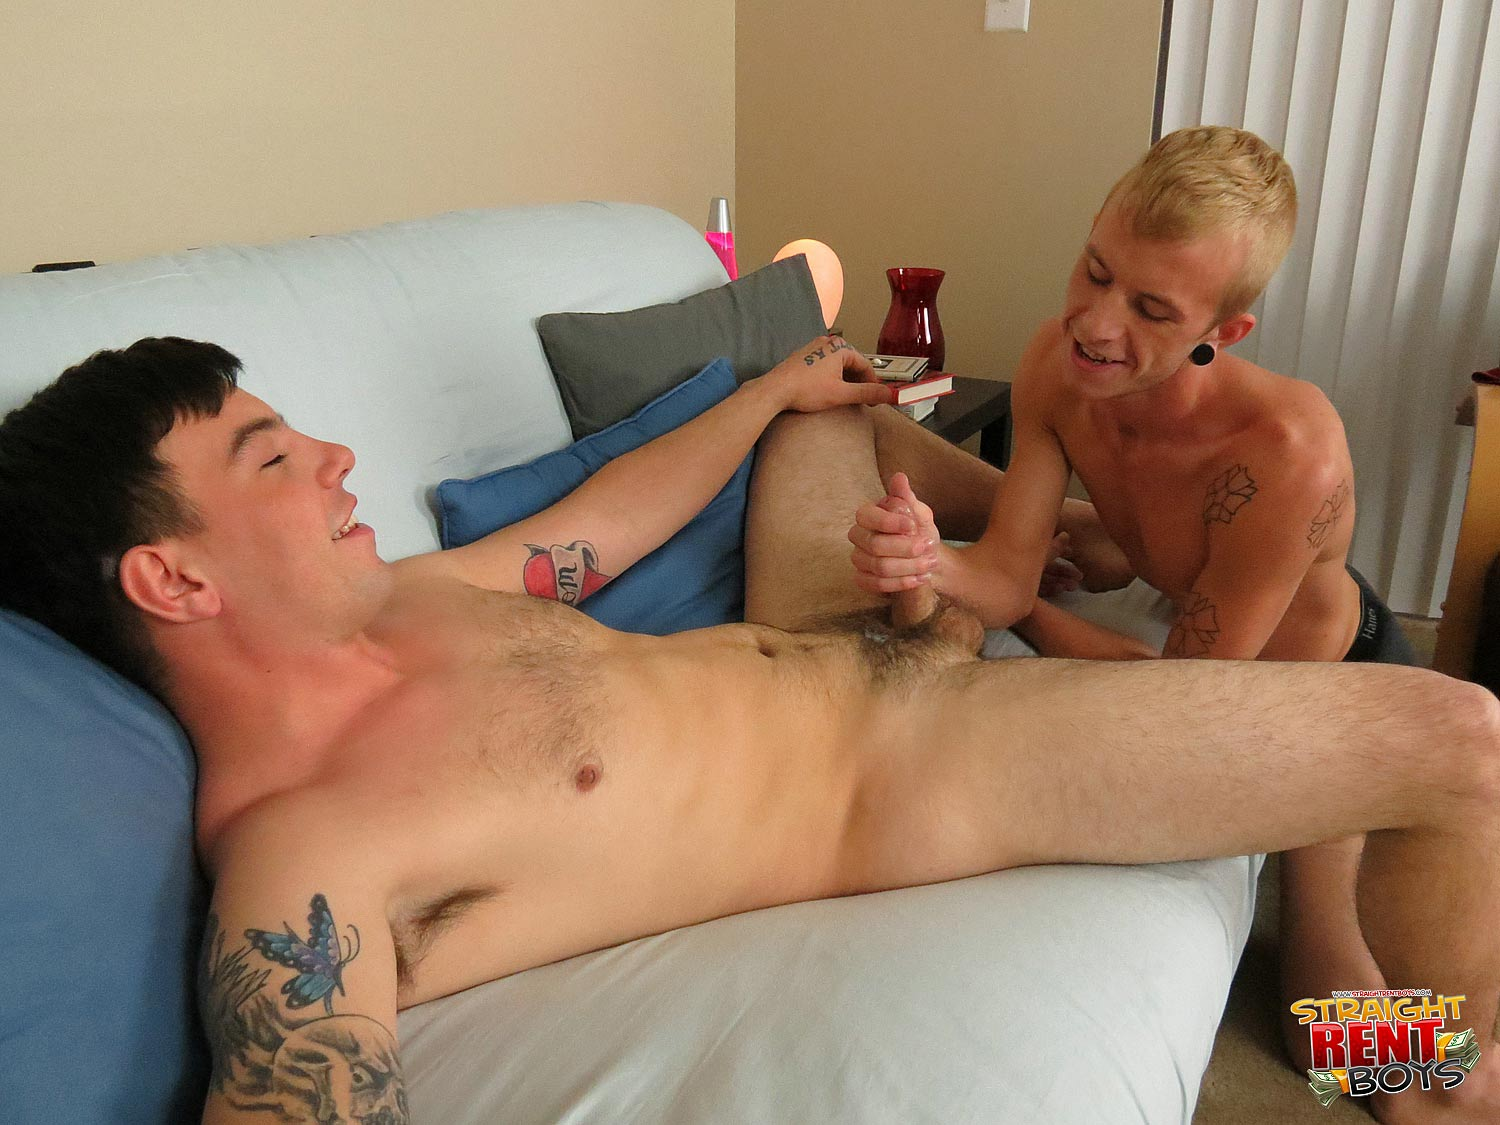 Straight Rent Boys Ernie and Cody Straight Guys Sucking Cock Amateur Gay Porn 09 Straight Young Beefy Stud Gets Blown By A Gay Hustler For Cash